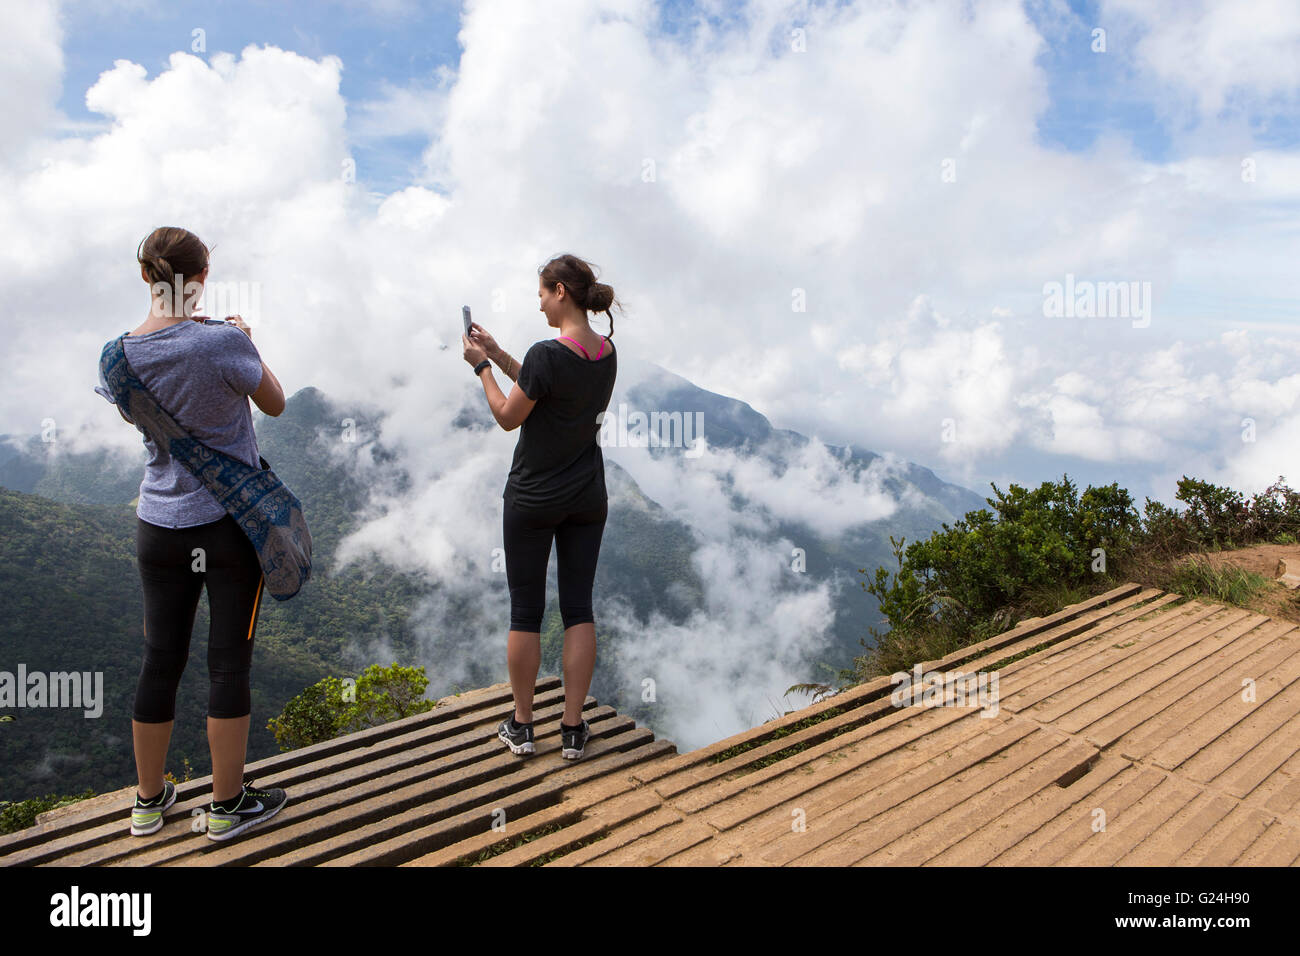 Tourists take photos at World's End which is located in Horton Plains National Park of Nuwara Eliya, Sri Lanka - Stock Image